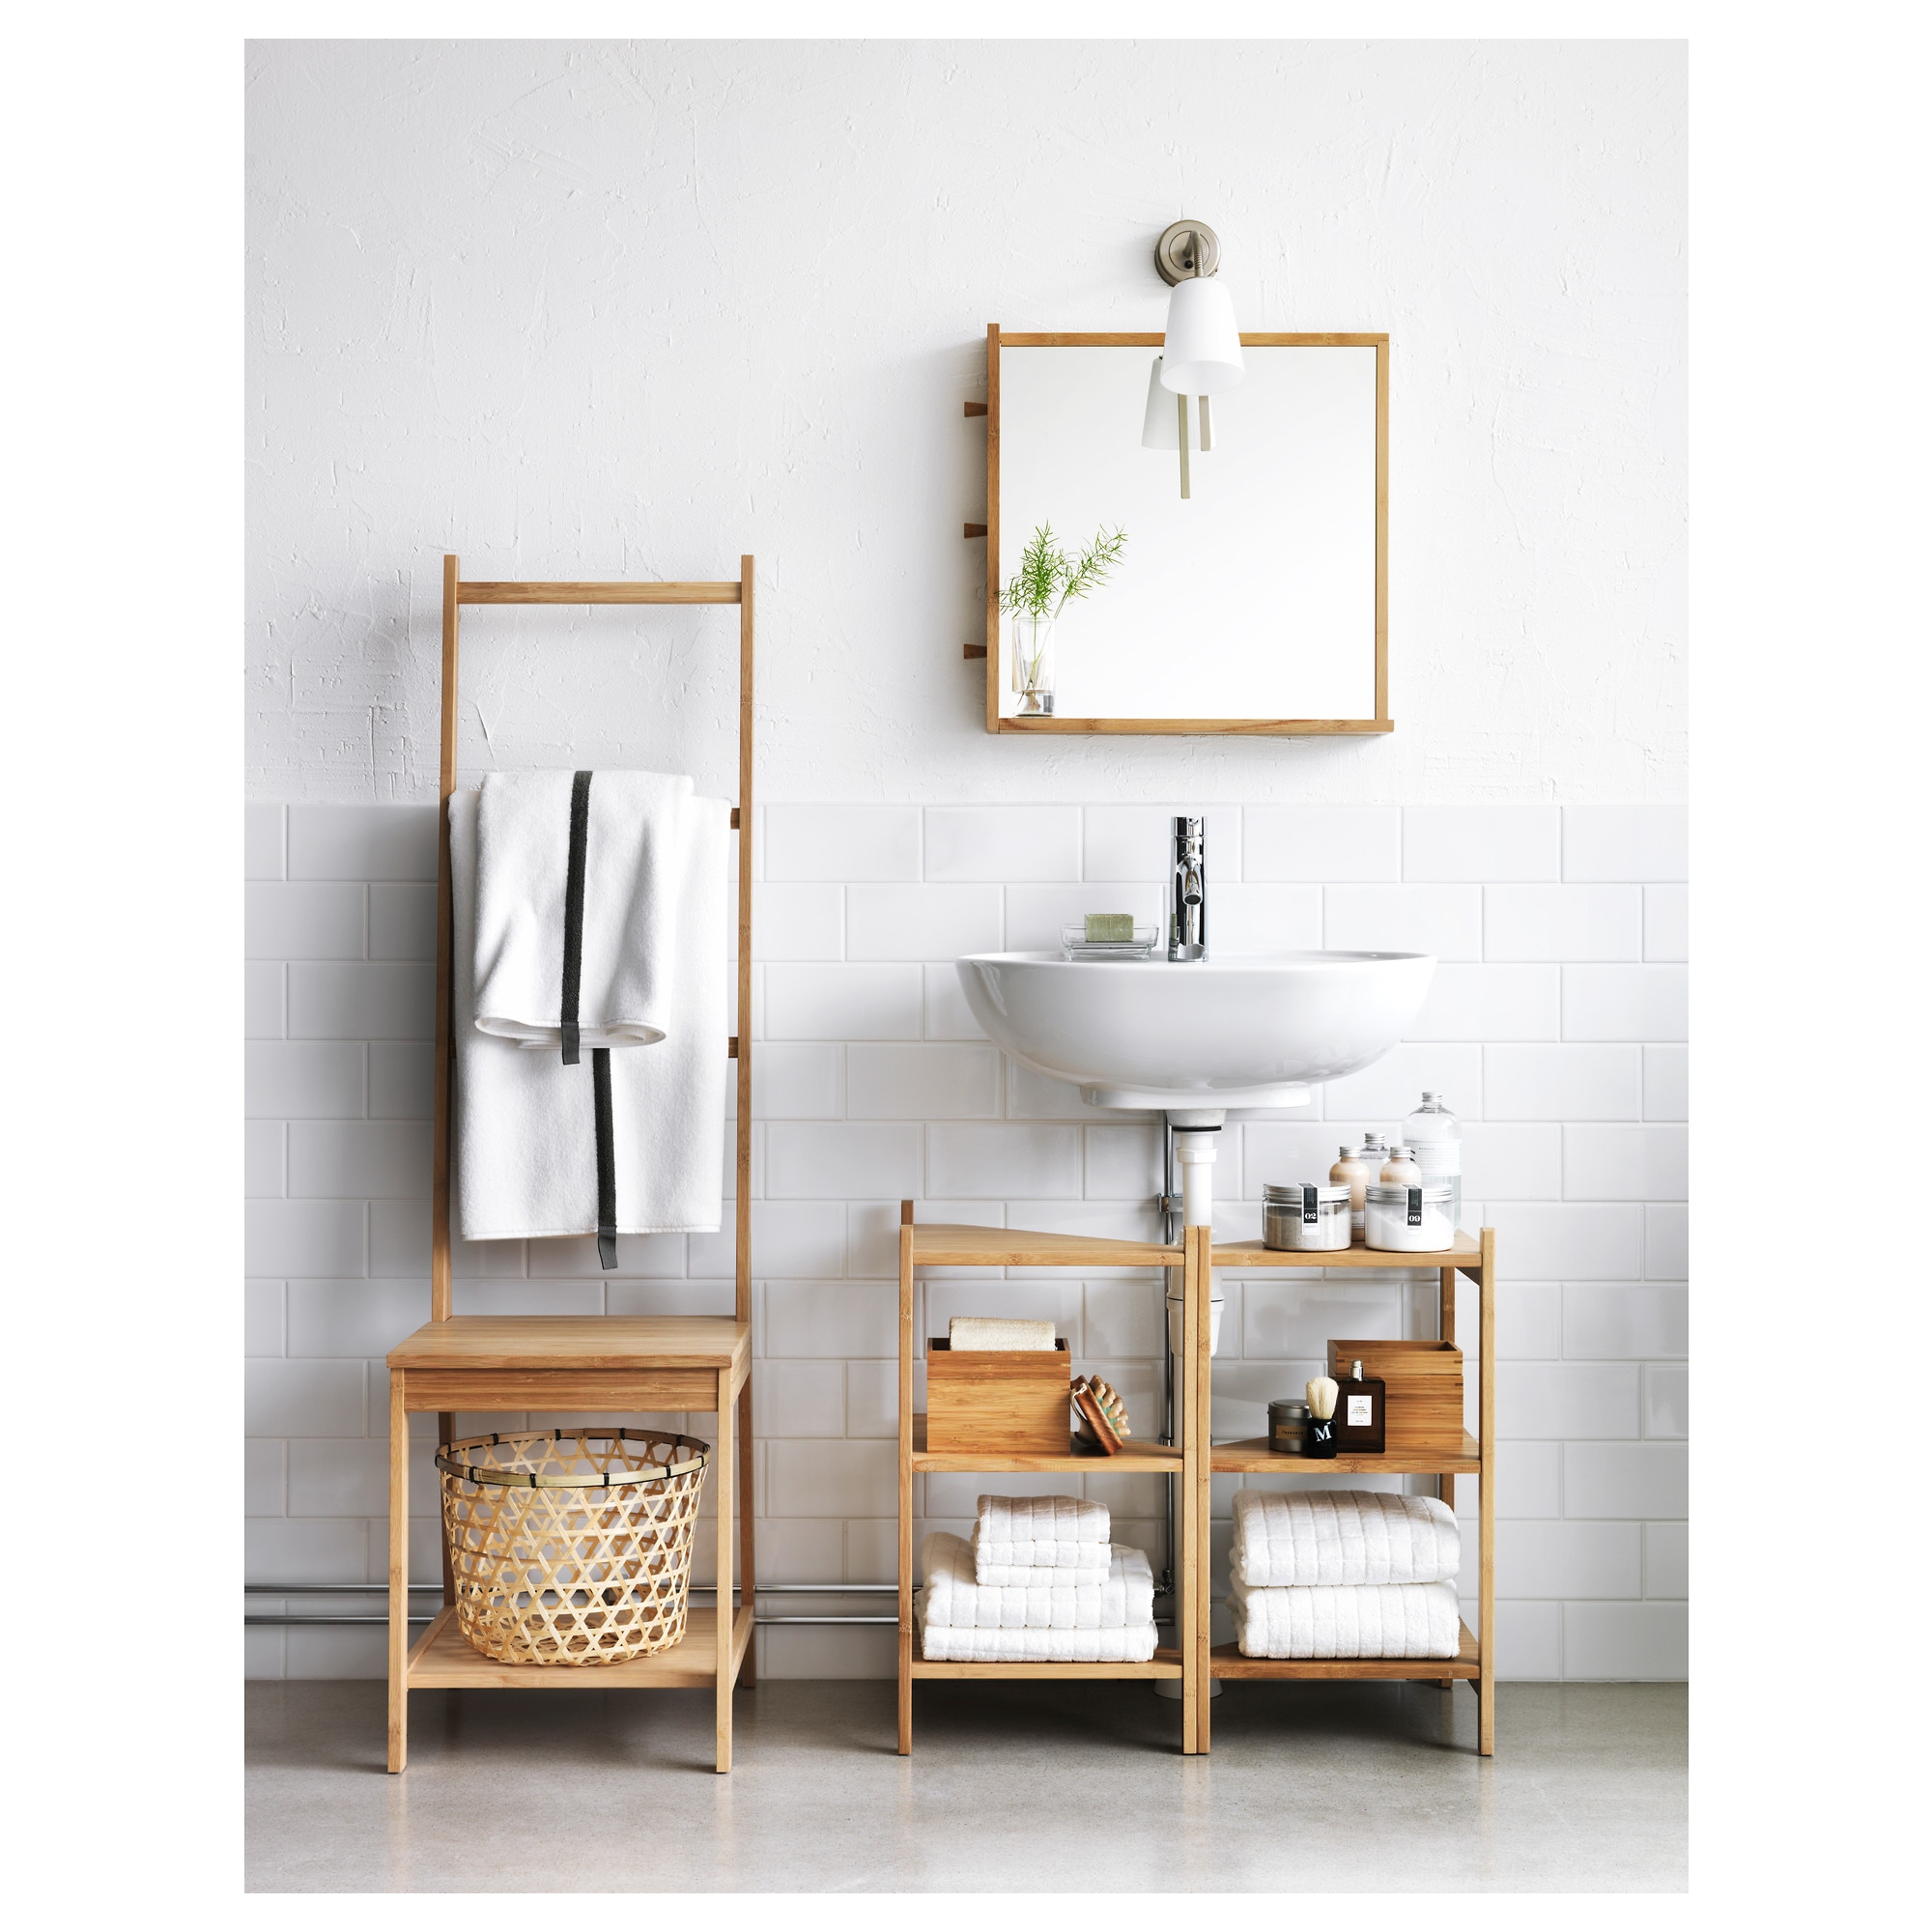 Ikea Bathroom Shelf Home Decorations Design list of things